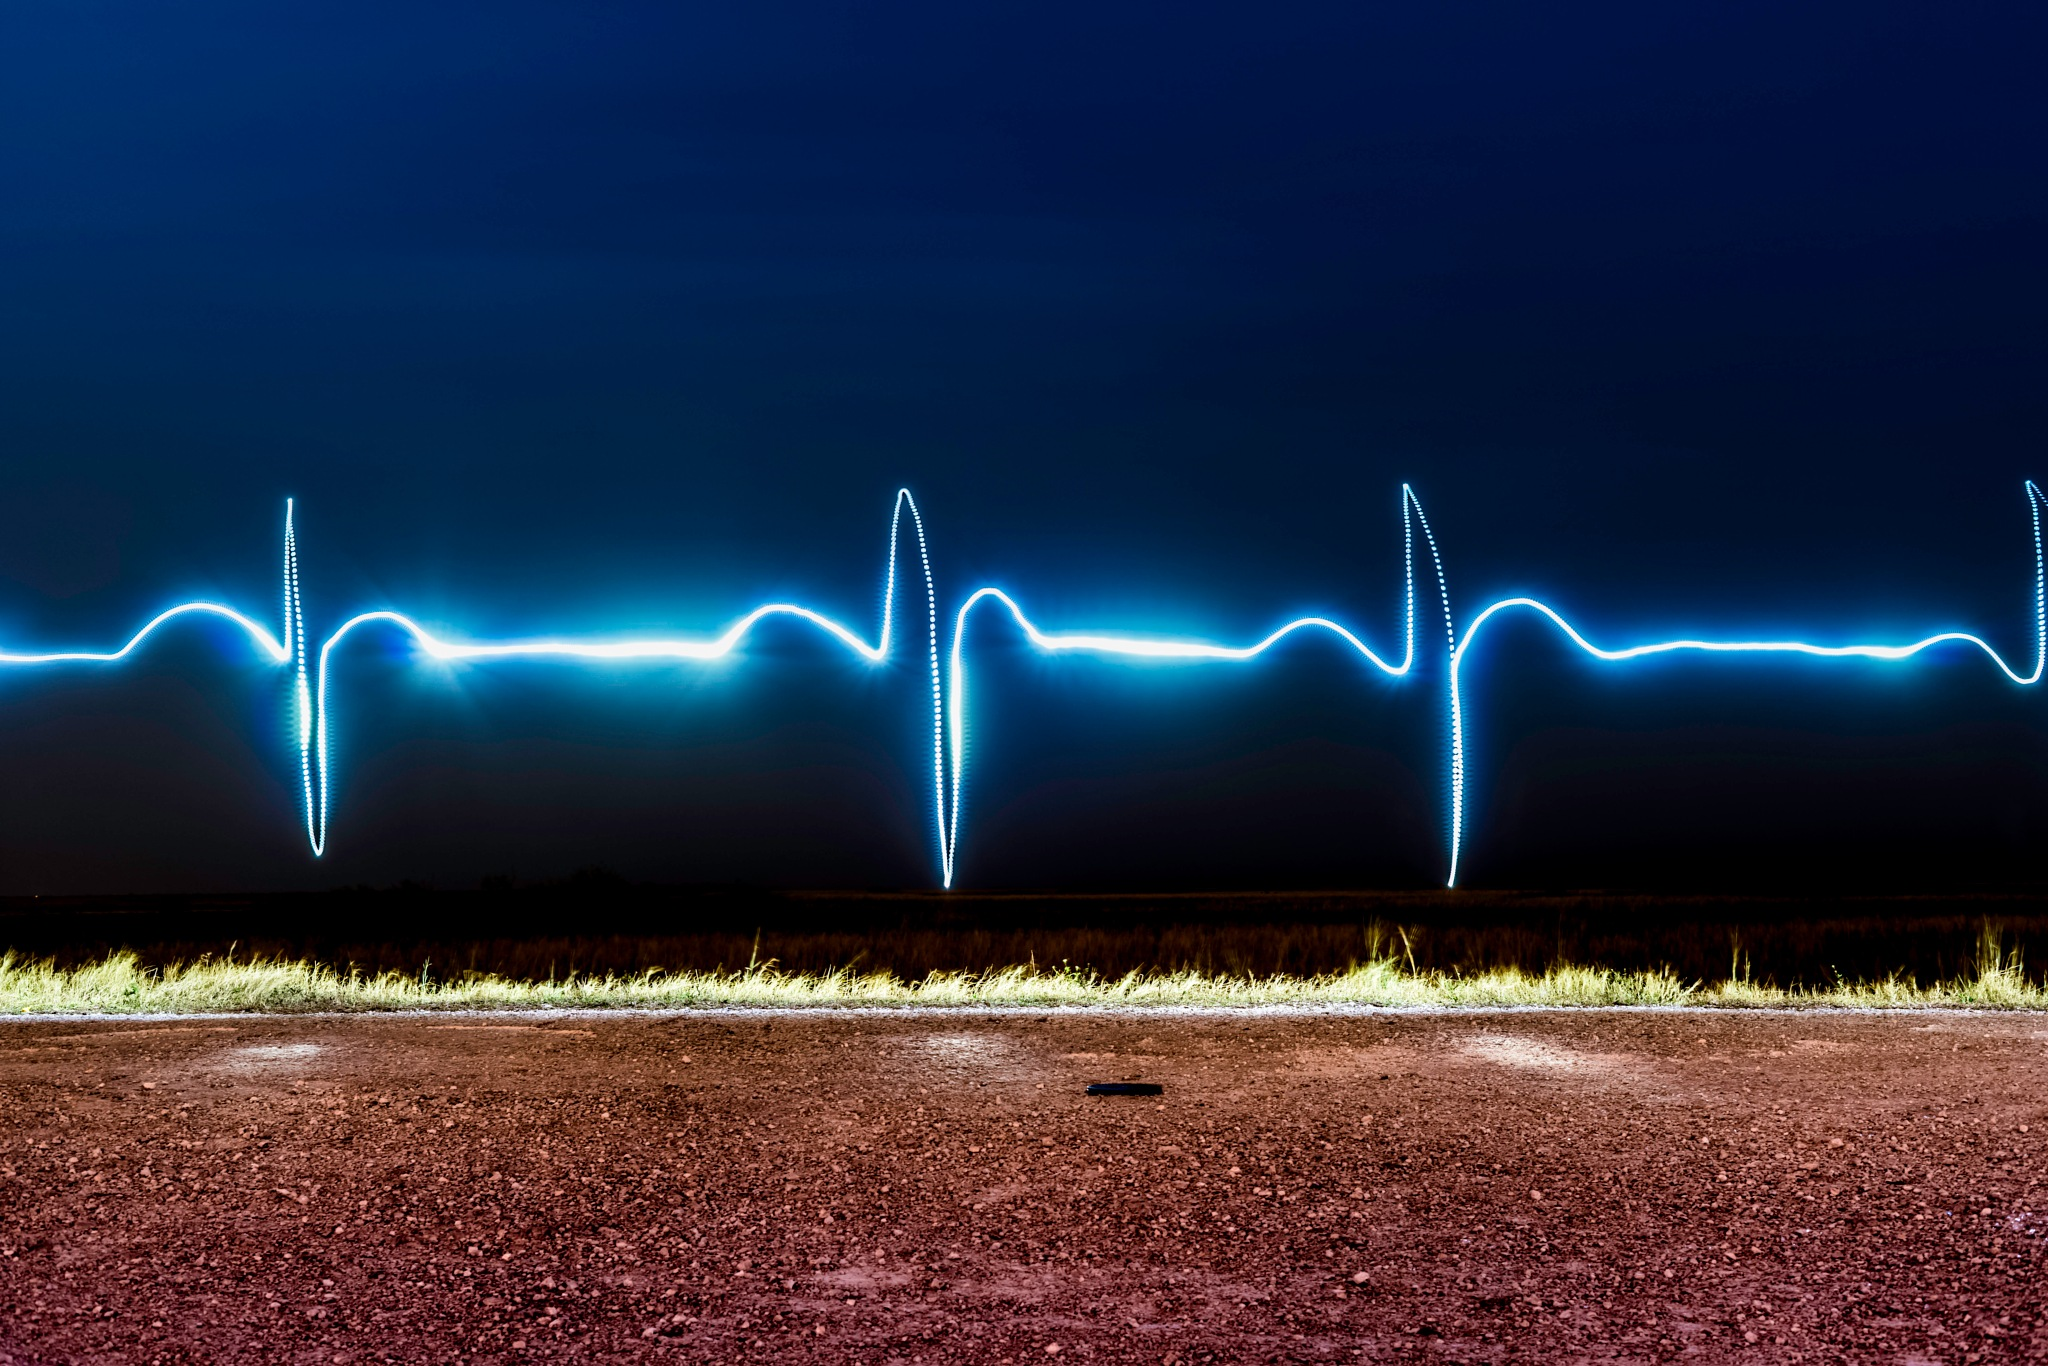 The Heartbeat by David Lustrup